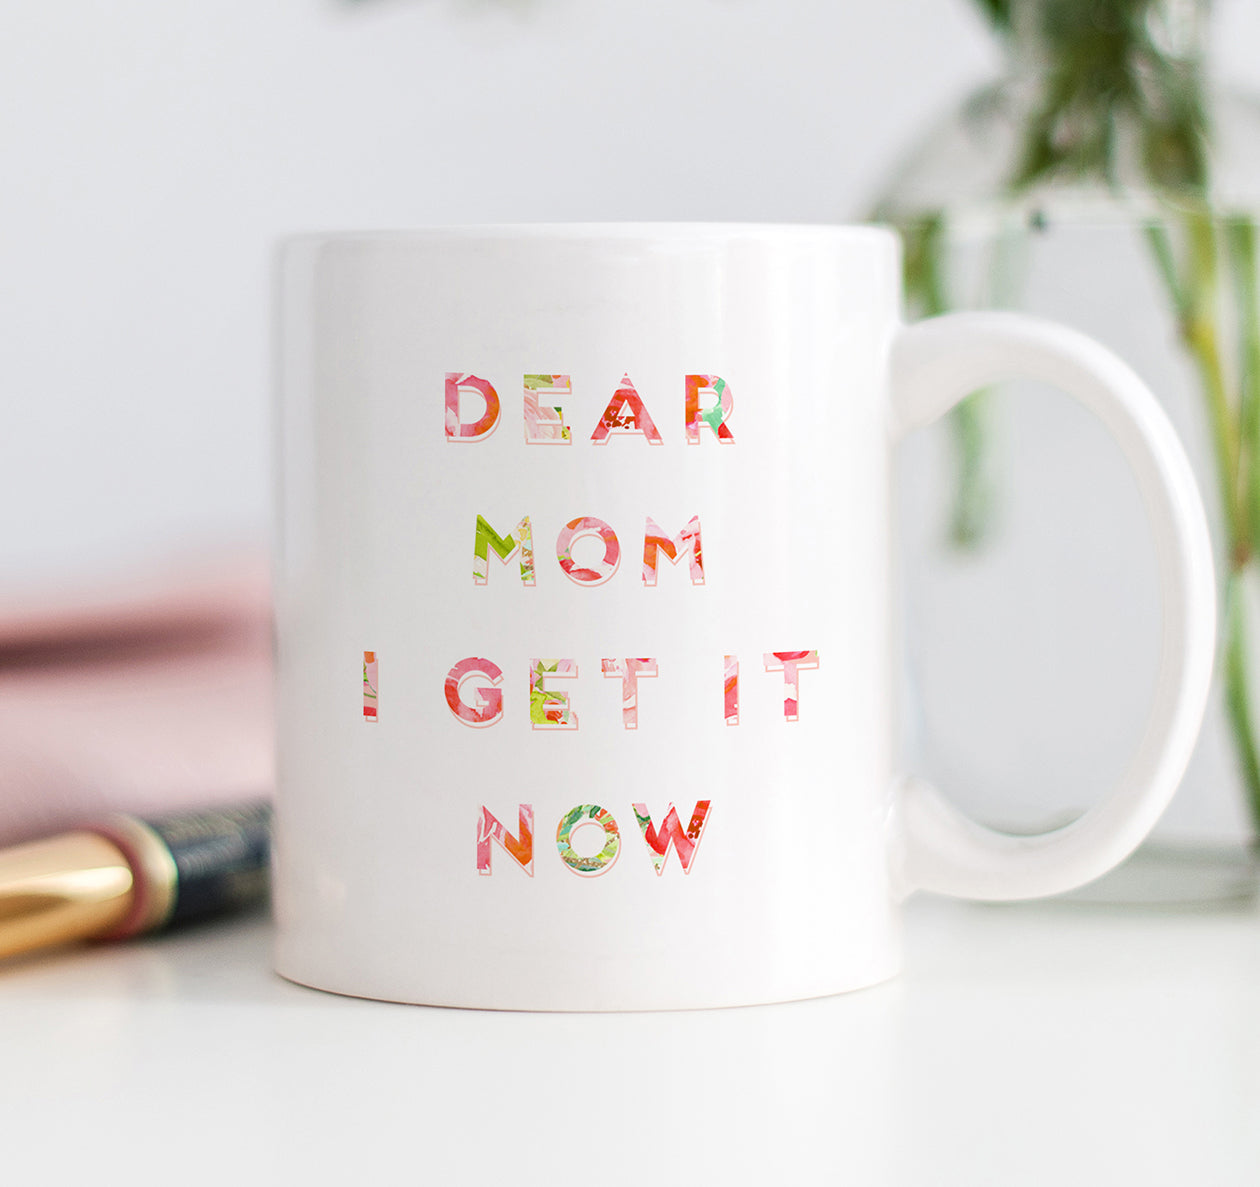 Dear Mom I Get It Now Mug